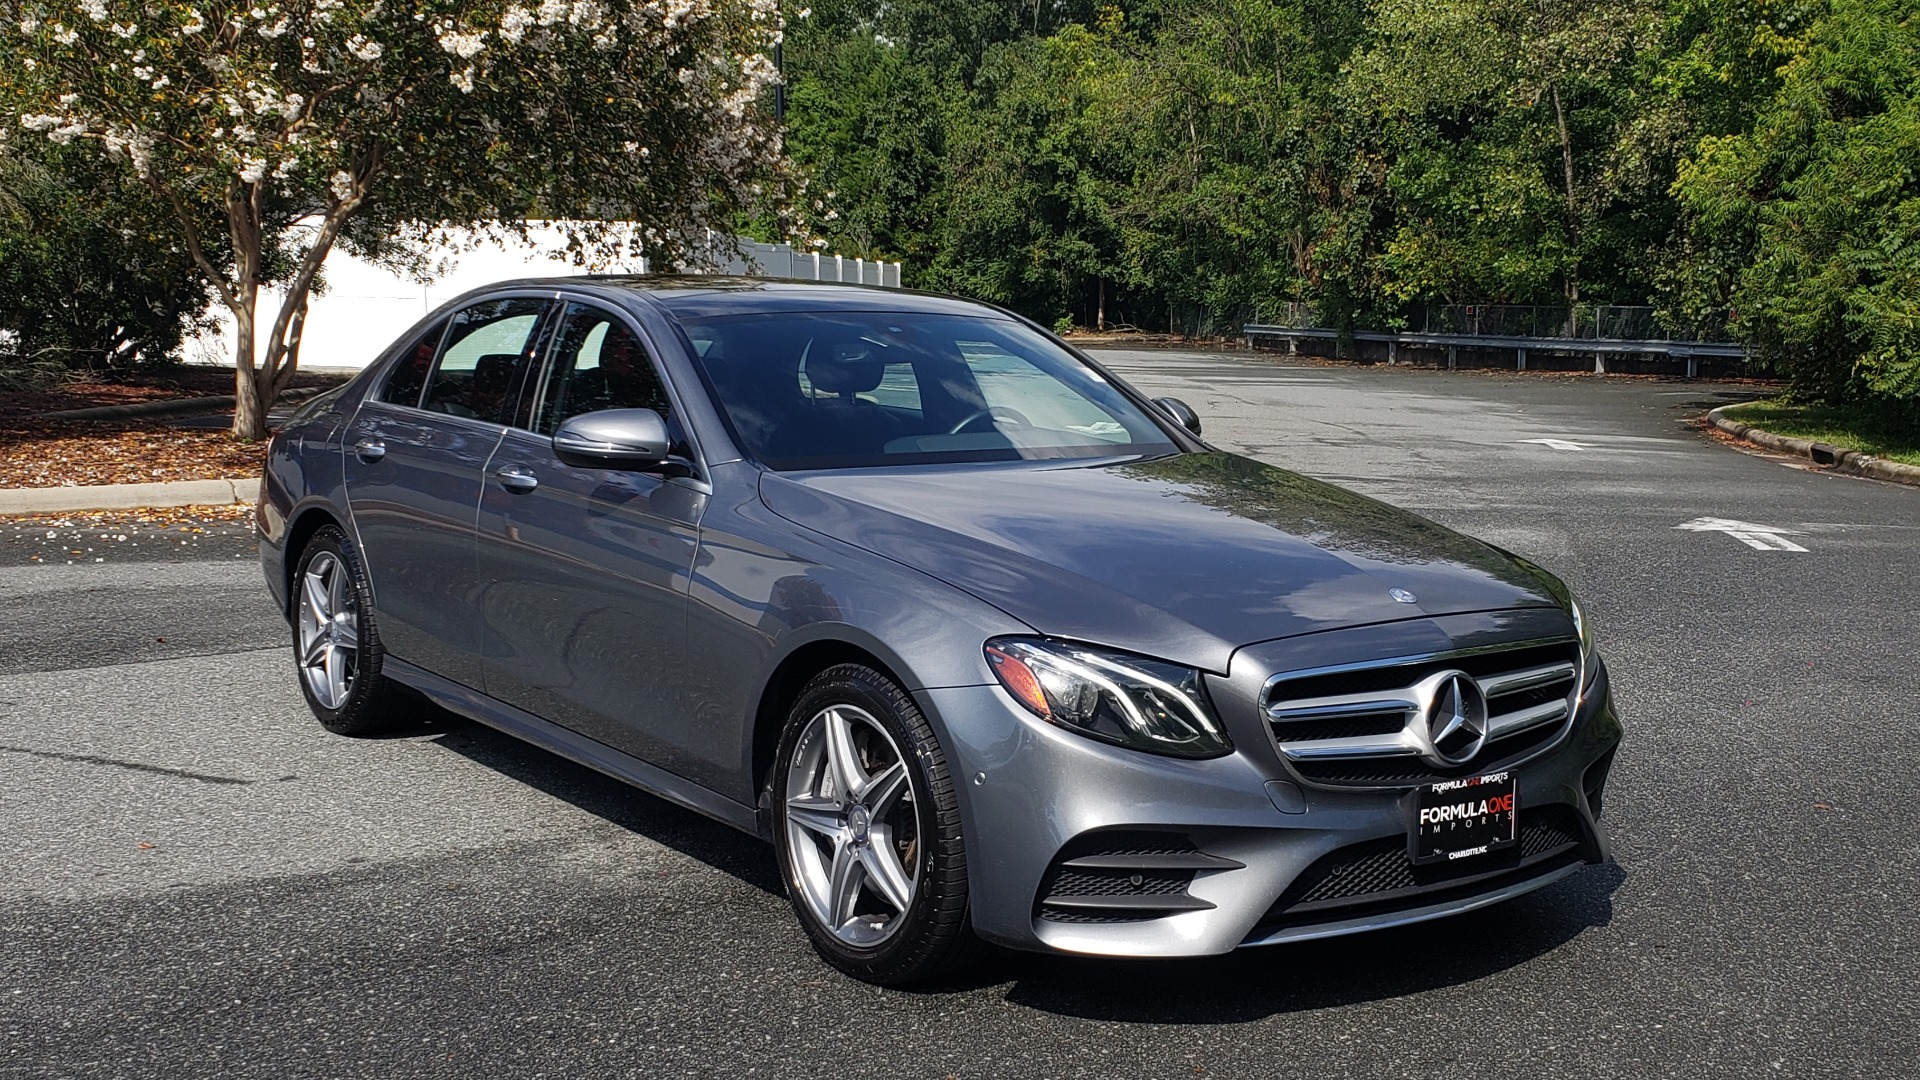 Used 2017 Mercedes-Benz E-CLASS E 300 SPORT / NAV / SUNROOF / HTD STS / BURMESTER / REARVIEW for sale Sold at Formula Imports in Charlotte NC 28227 4